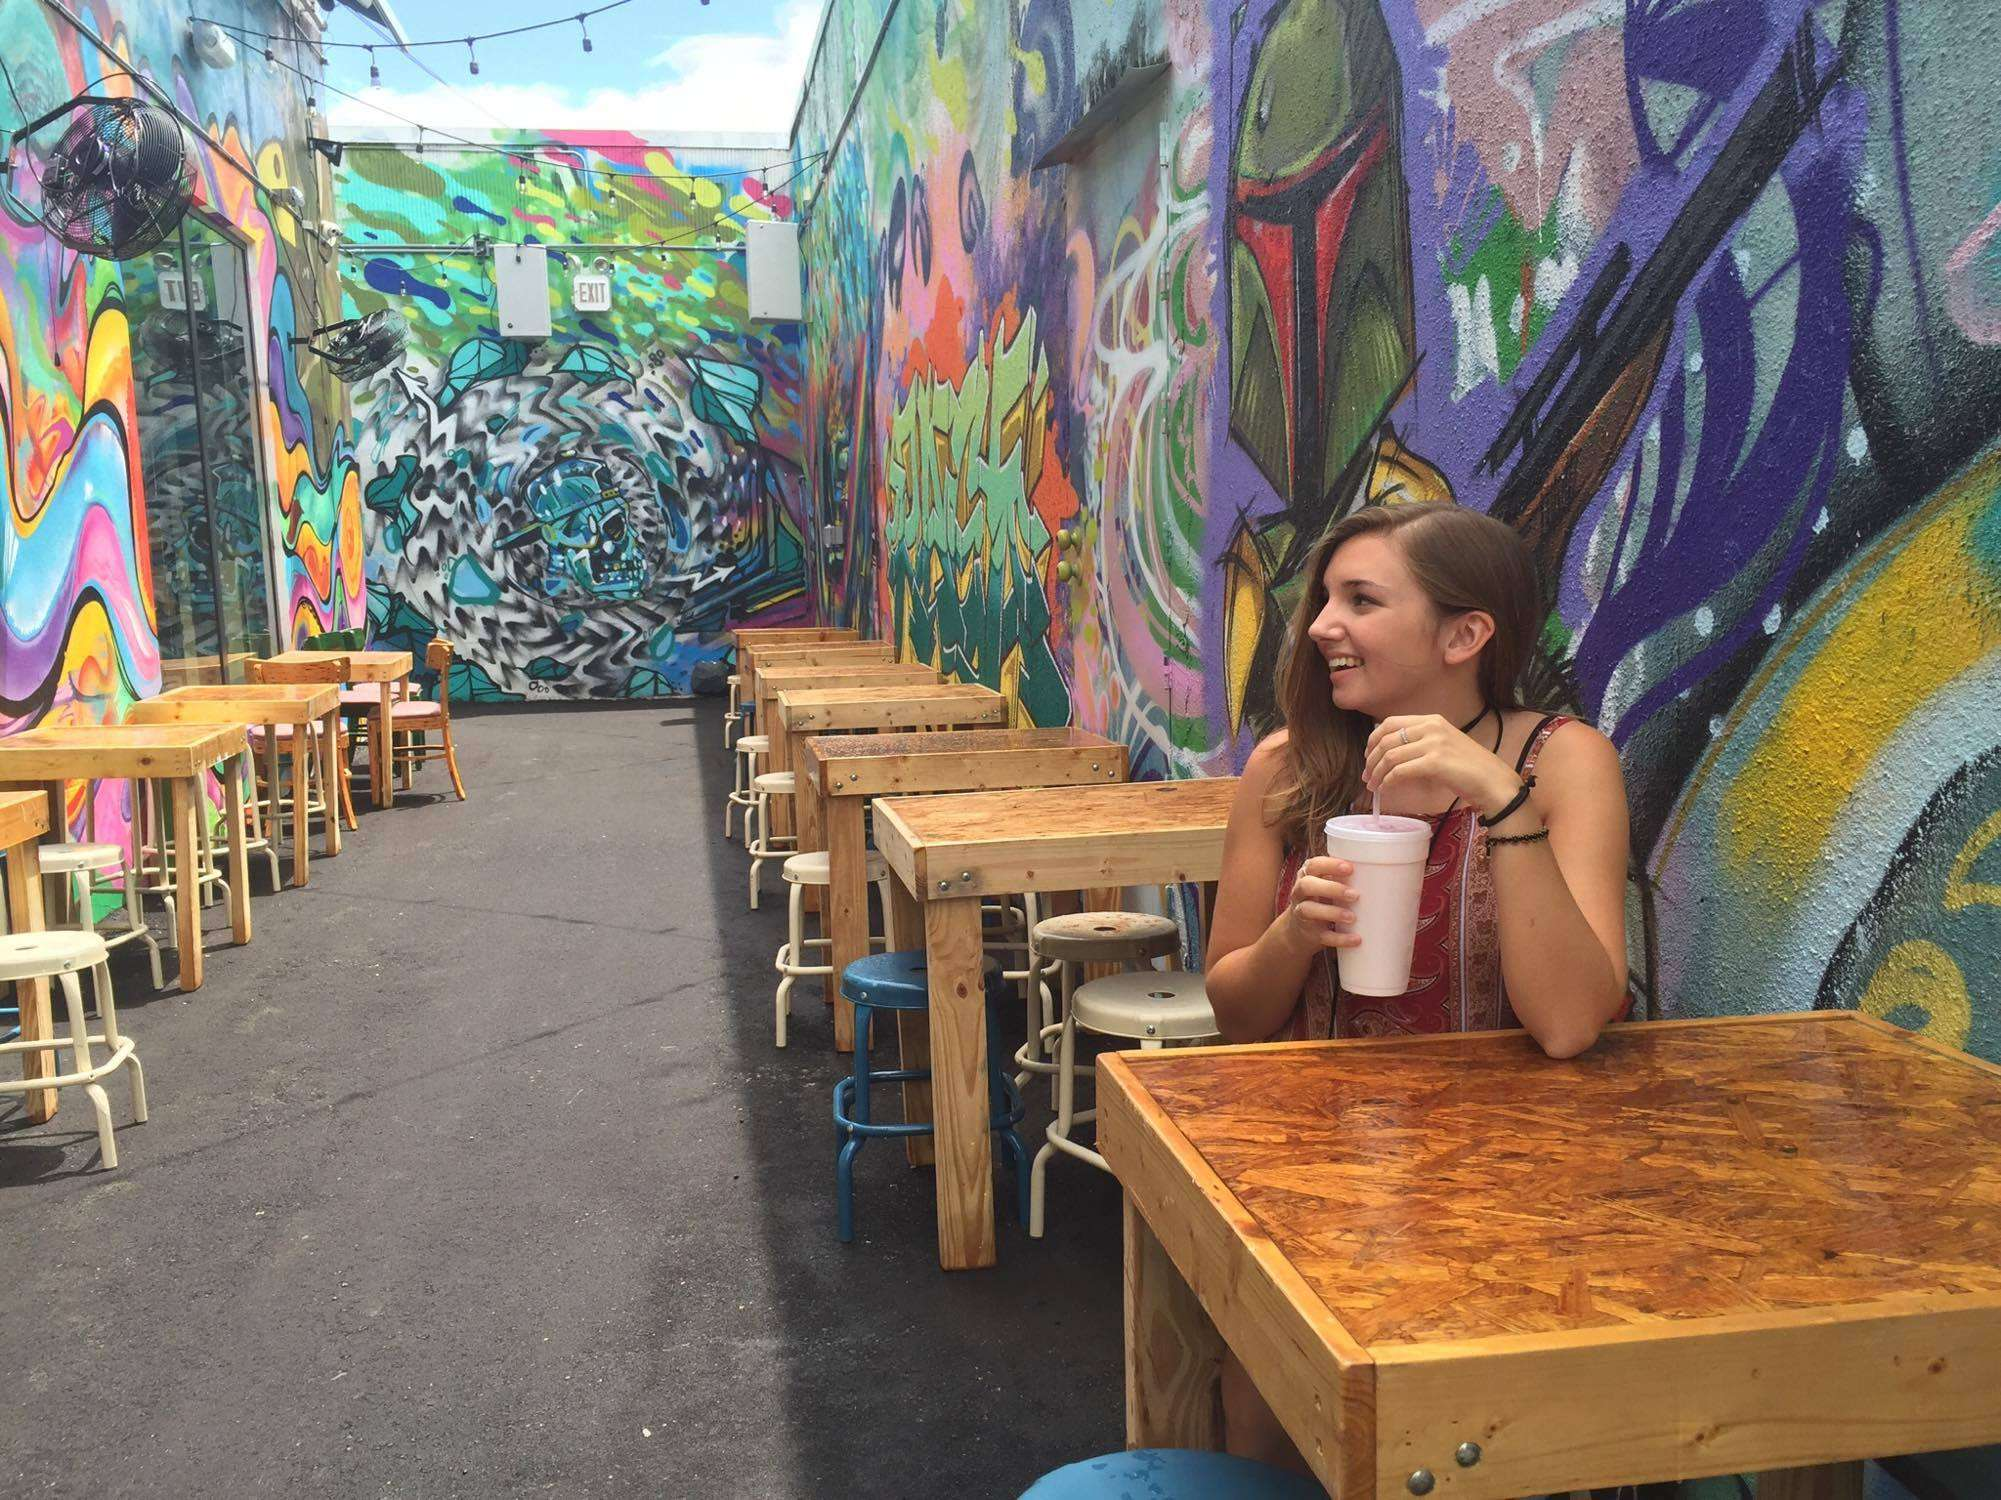 Miami Art District - Graffiti : Top 99 des villes les plus instagrammées - Nomad Junkies